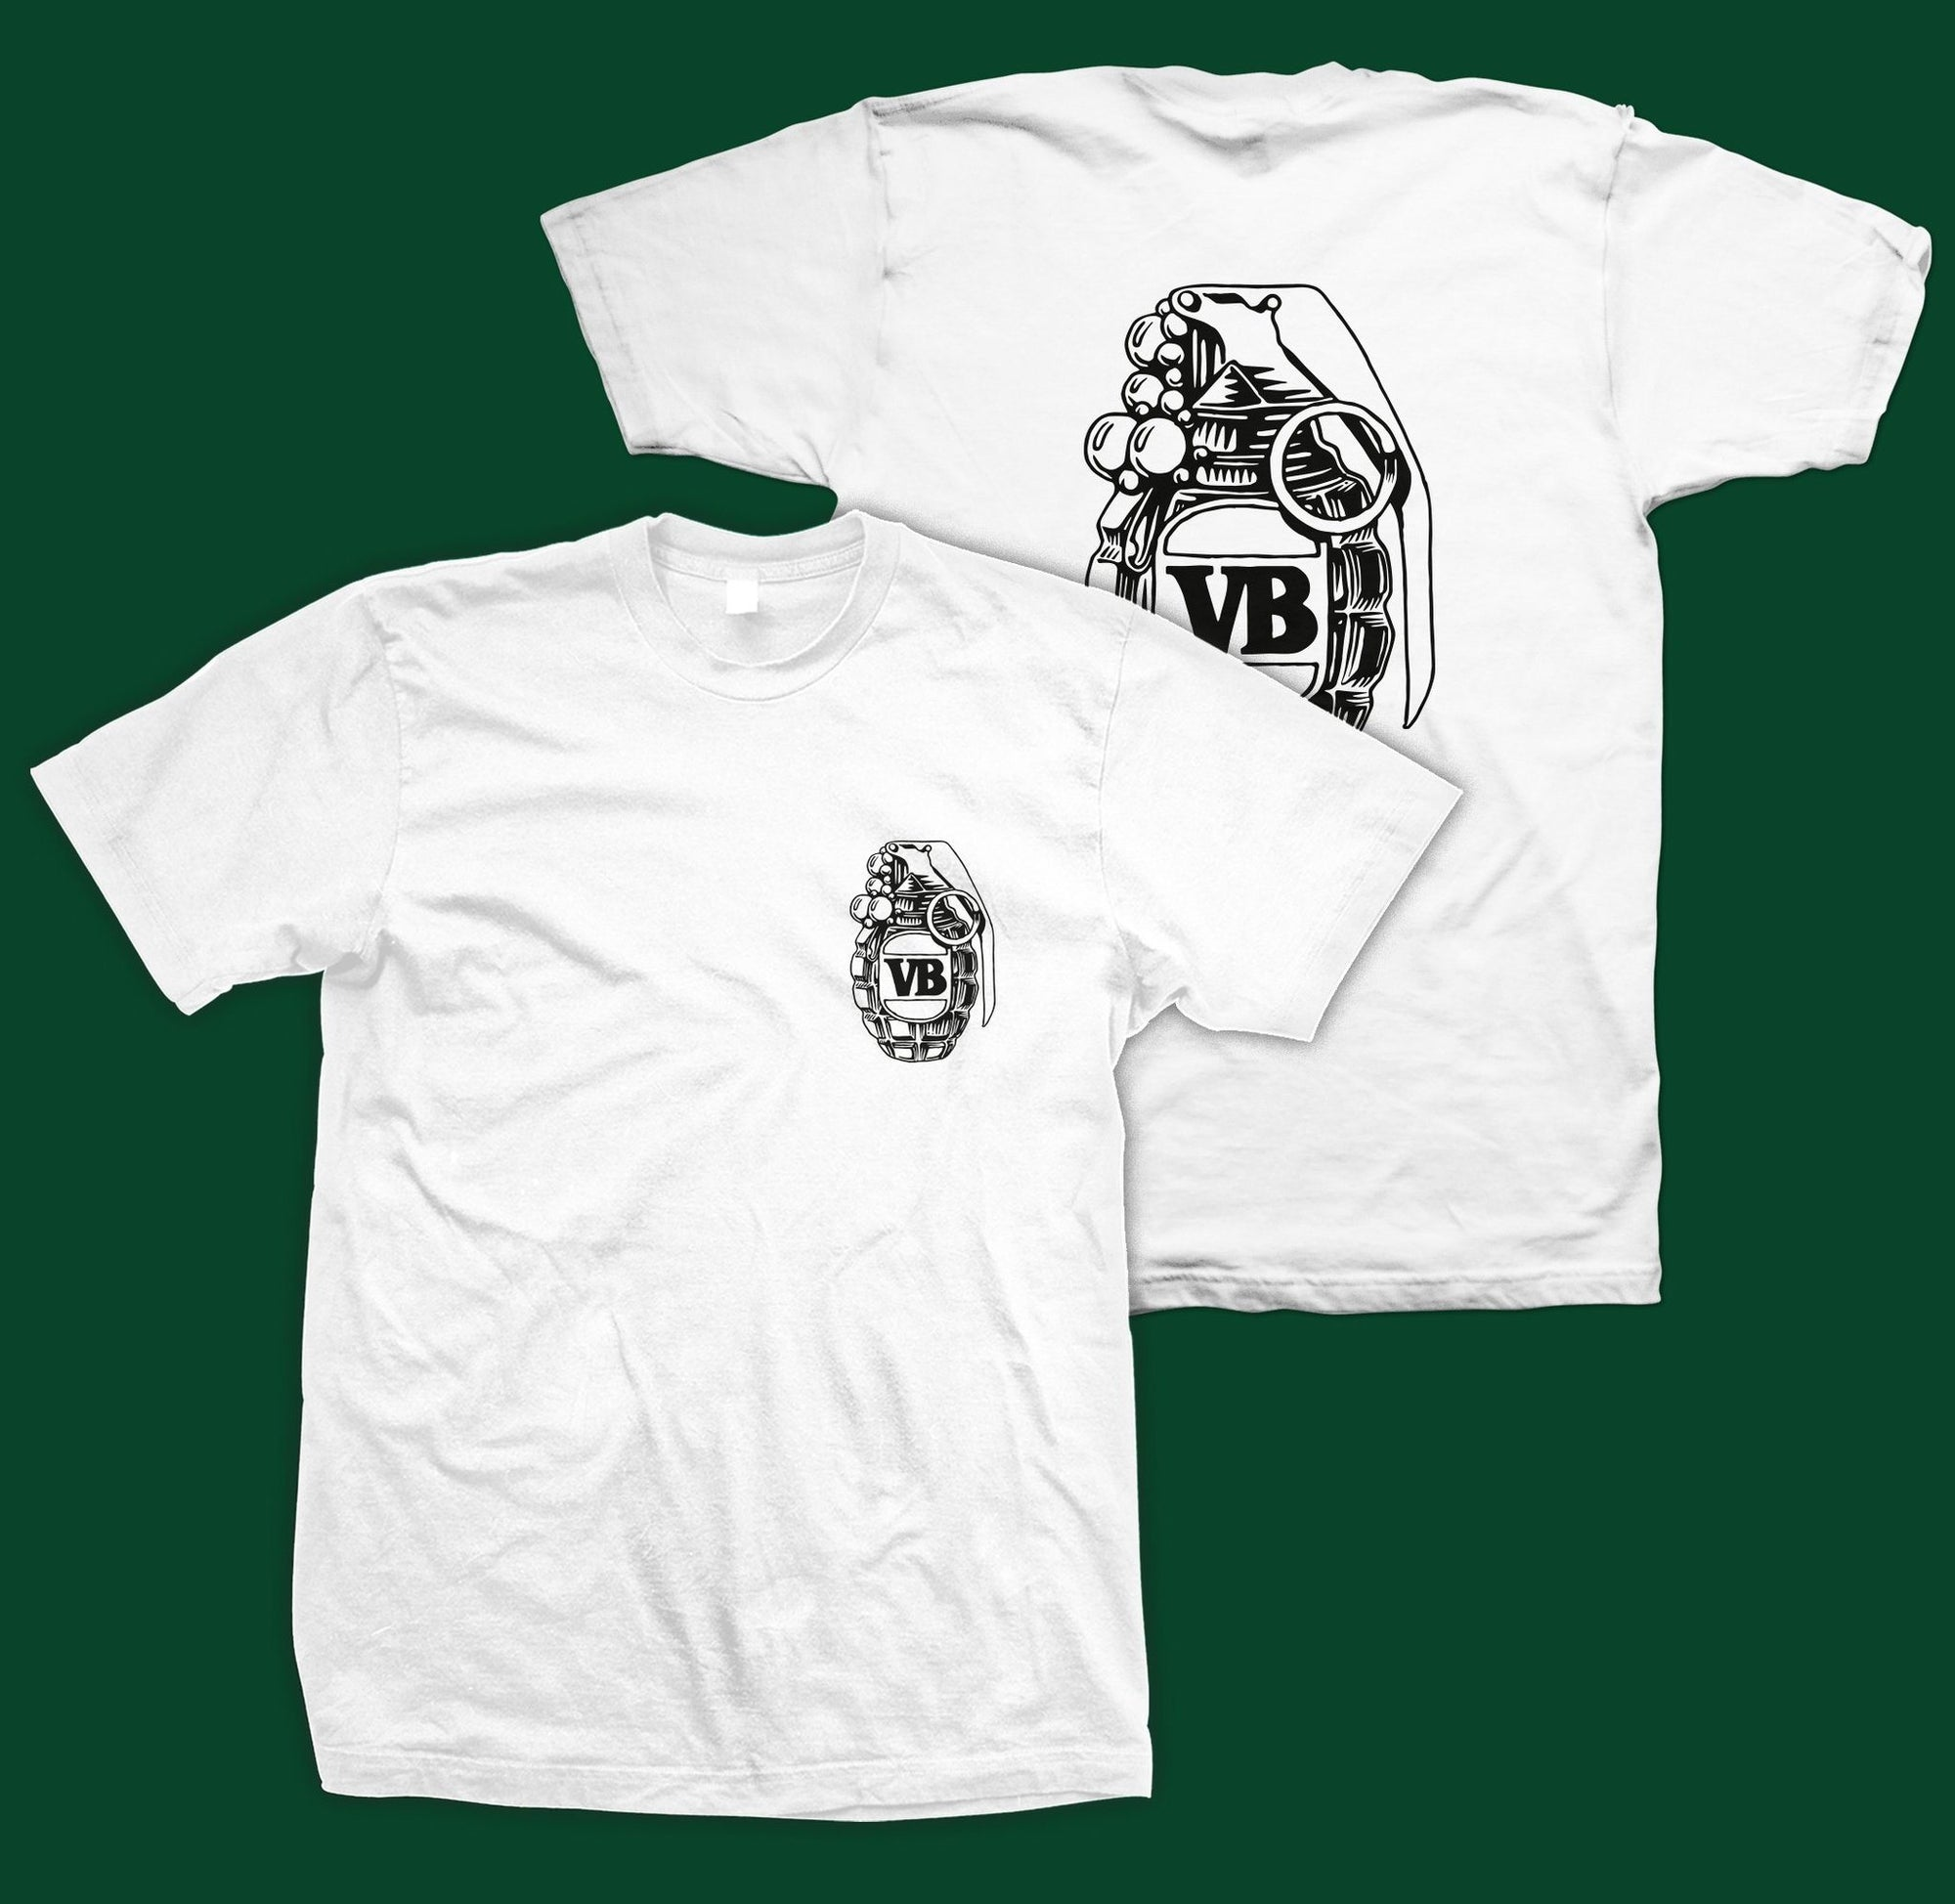 Victor Bravos Green Grenade T-Shirt - Black on White SP-ApparelTees-Mens Victor Bravo's